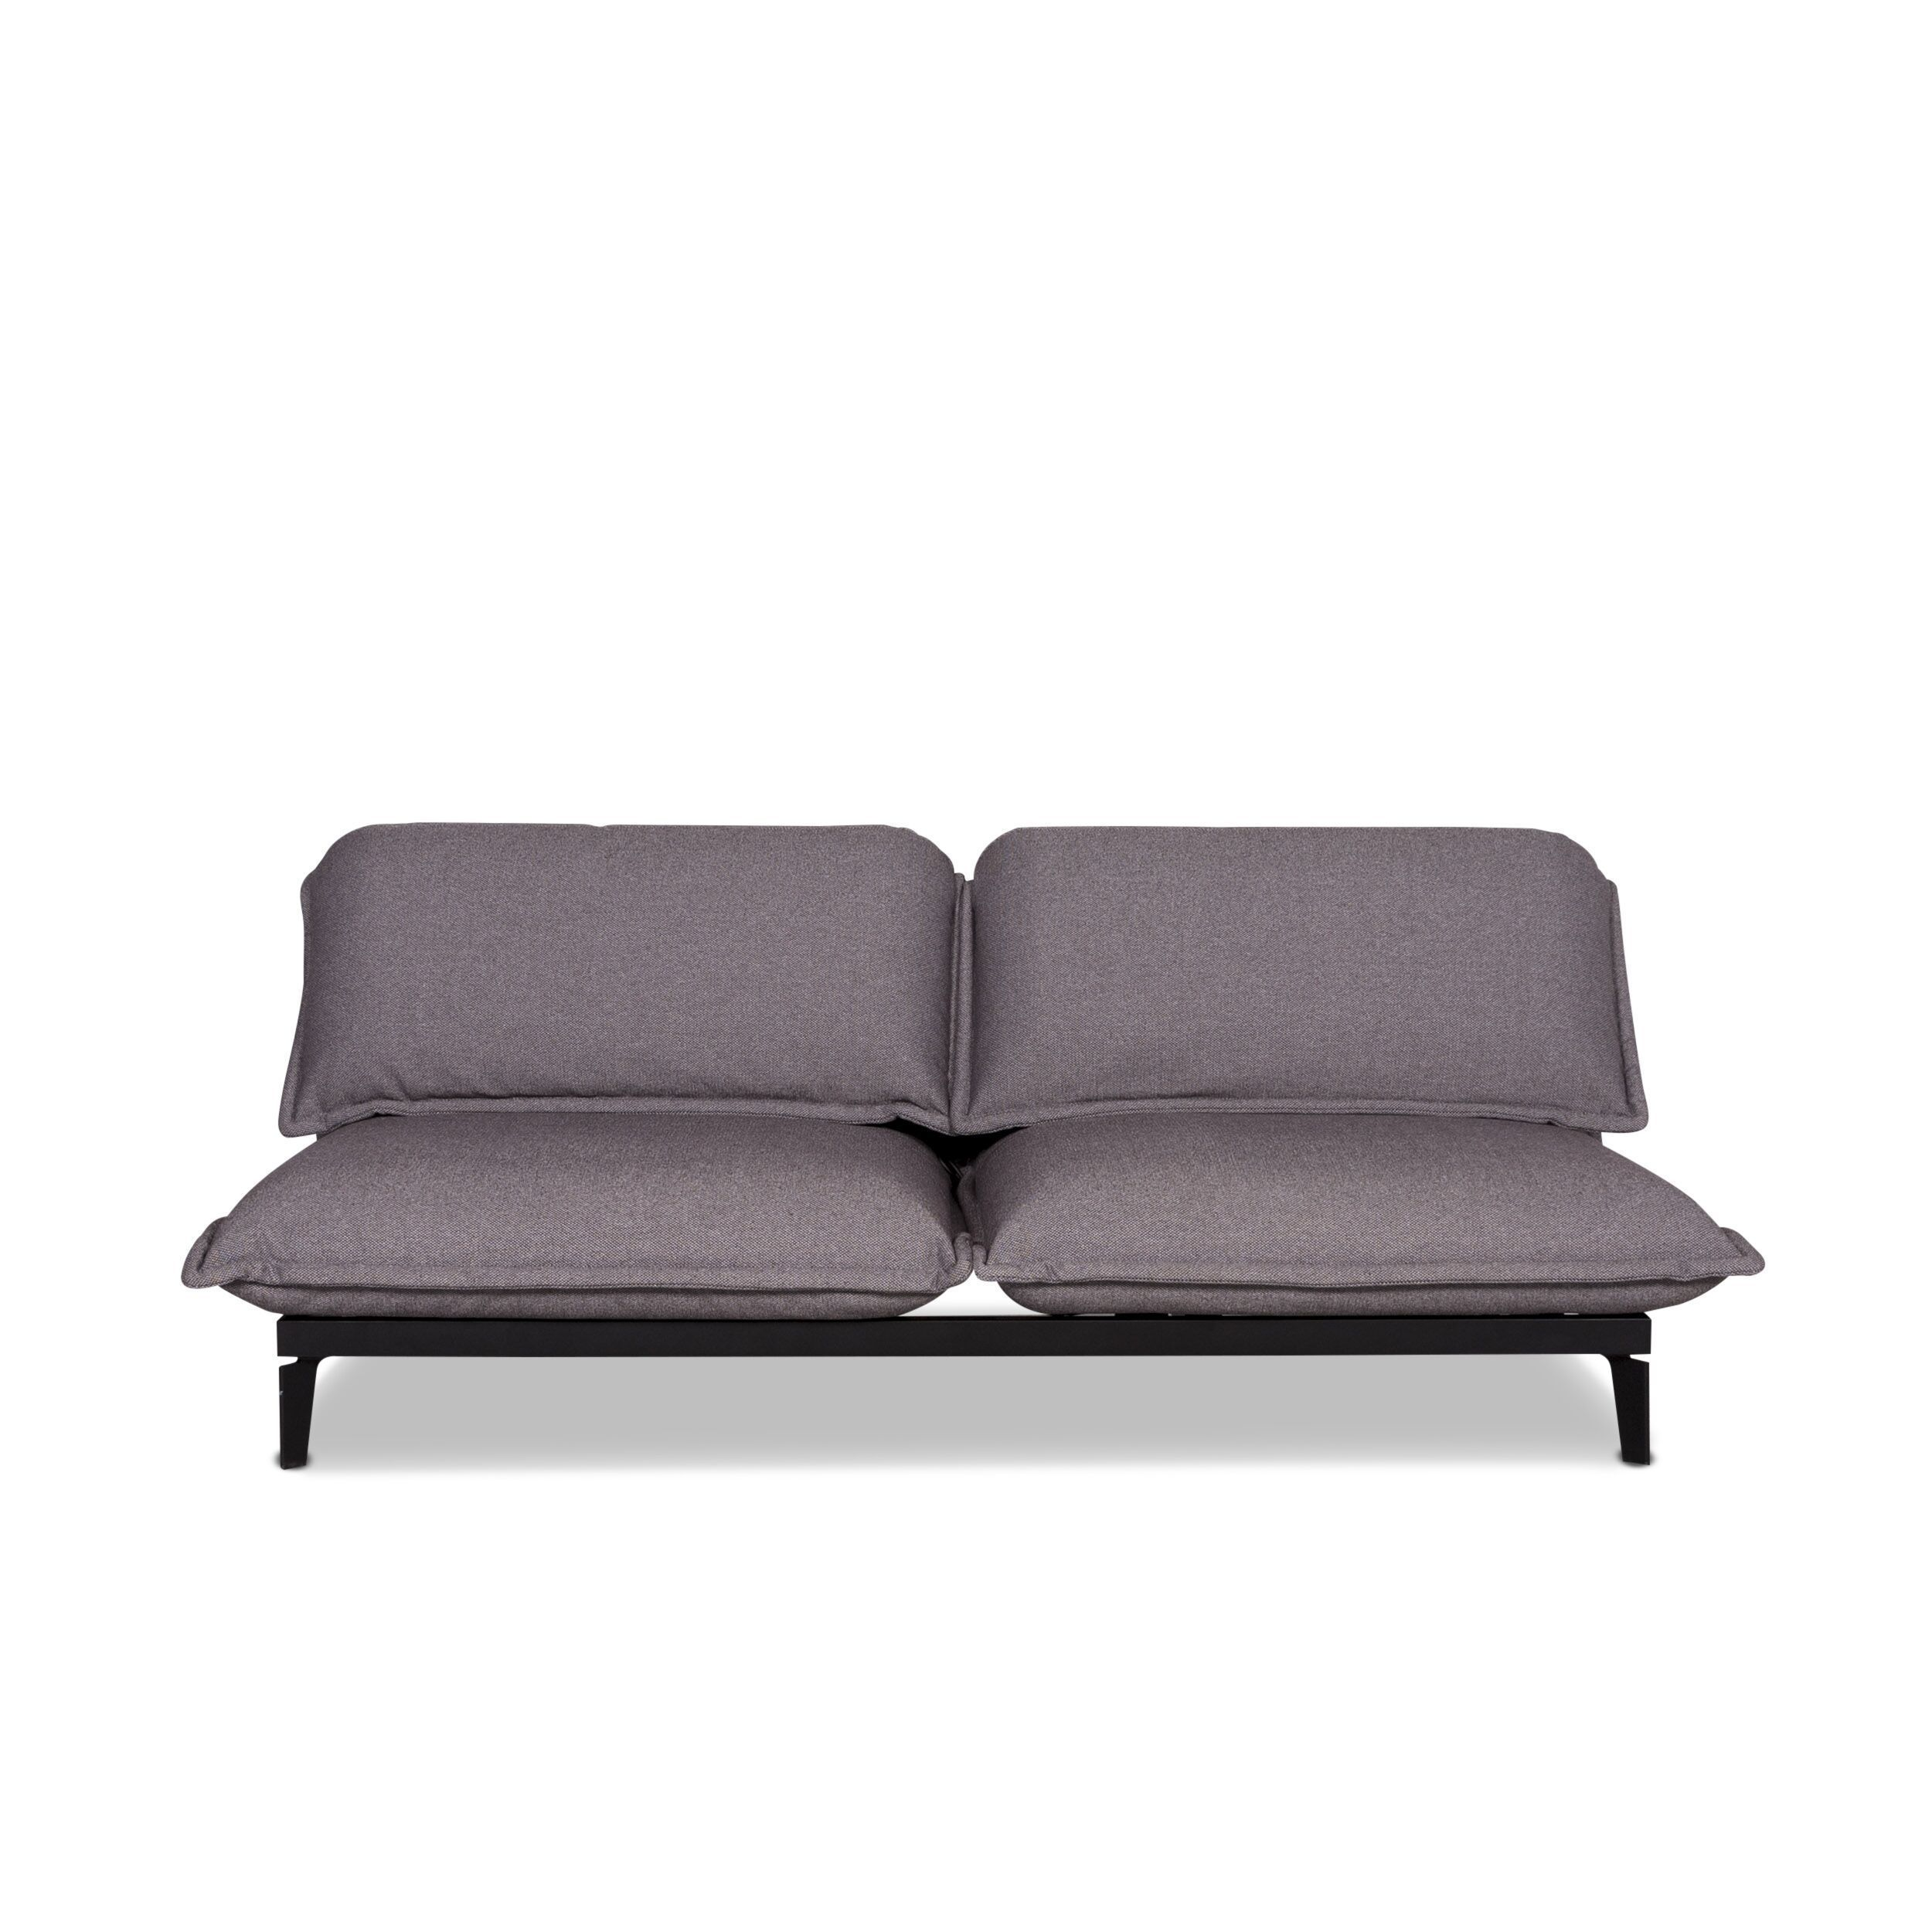 Rolf Benz Nova Designer Fabric Sofa Bed Gray Two Seater Relax Function Couch 9930